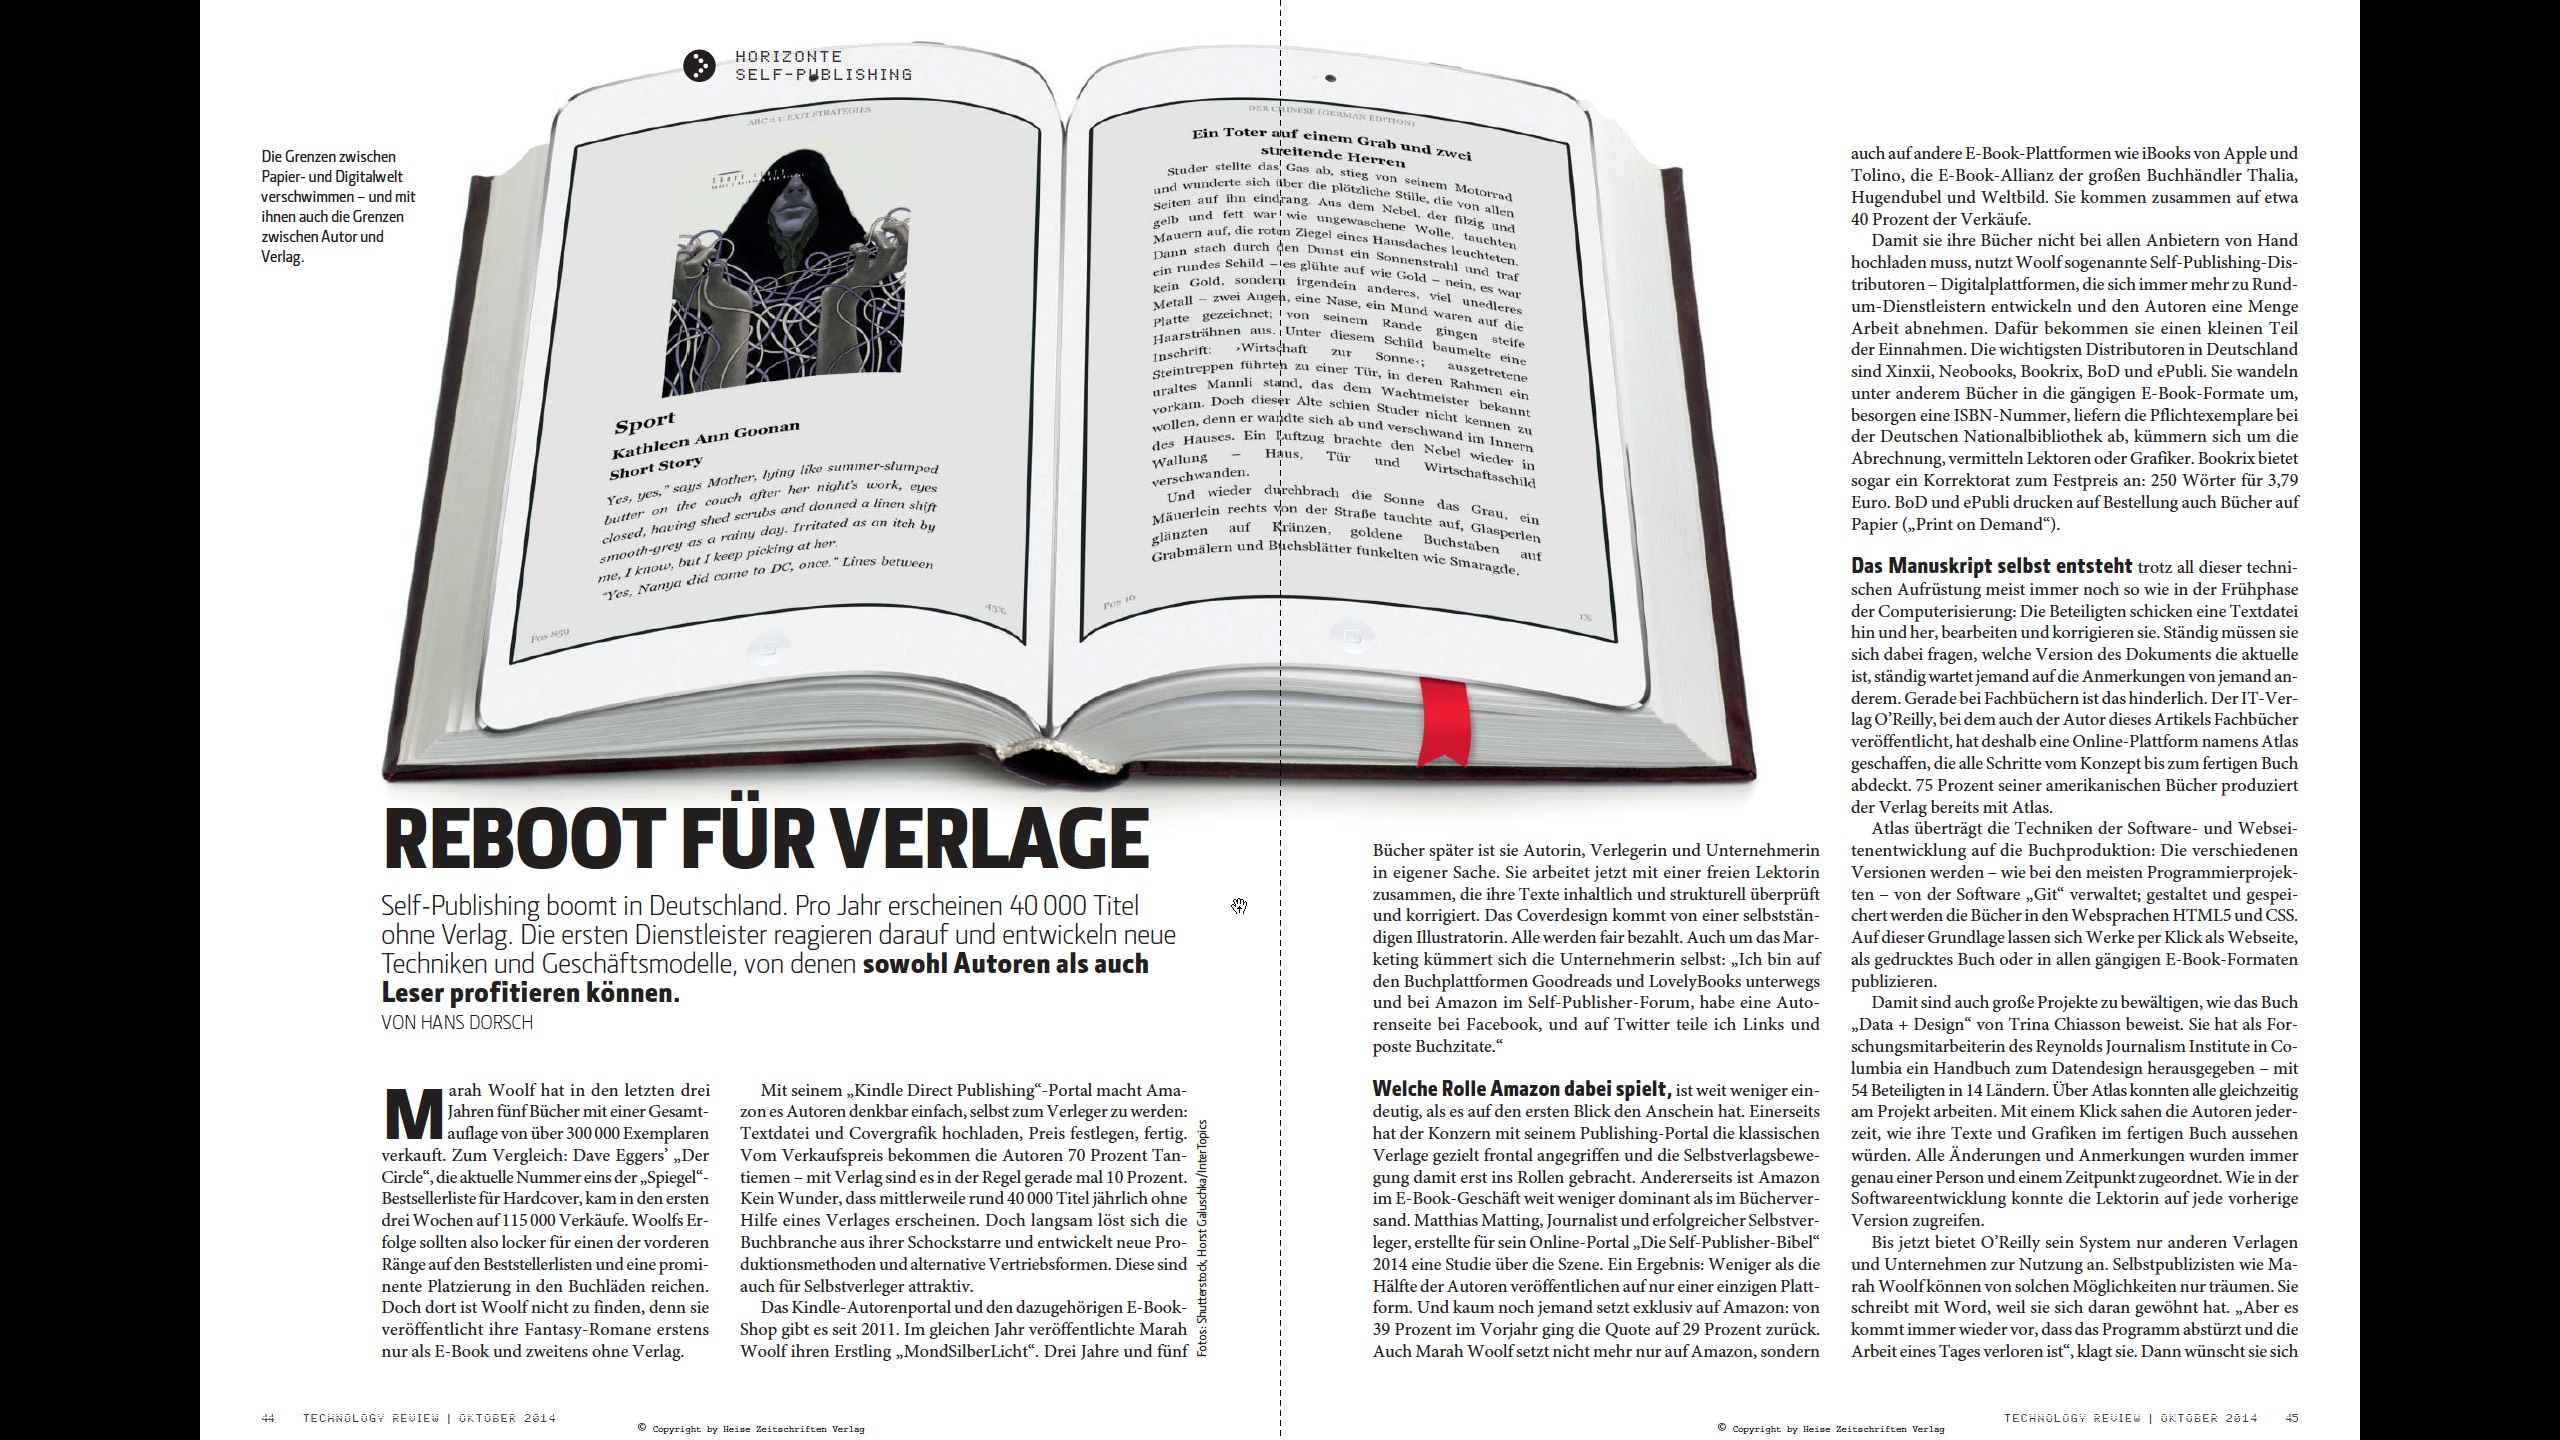 referenz-tr-publishing